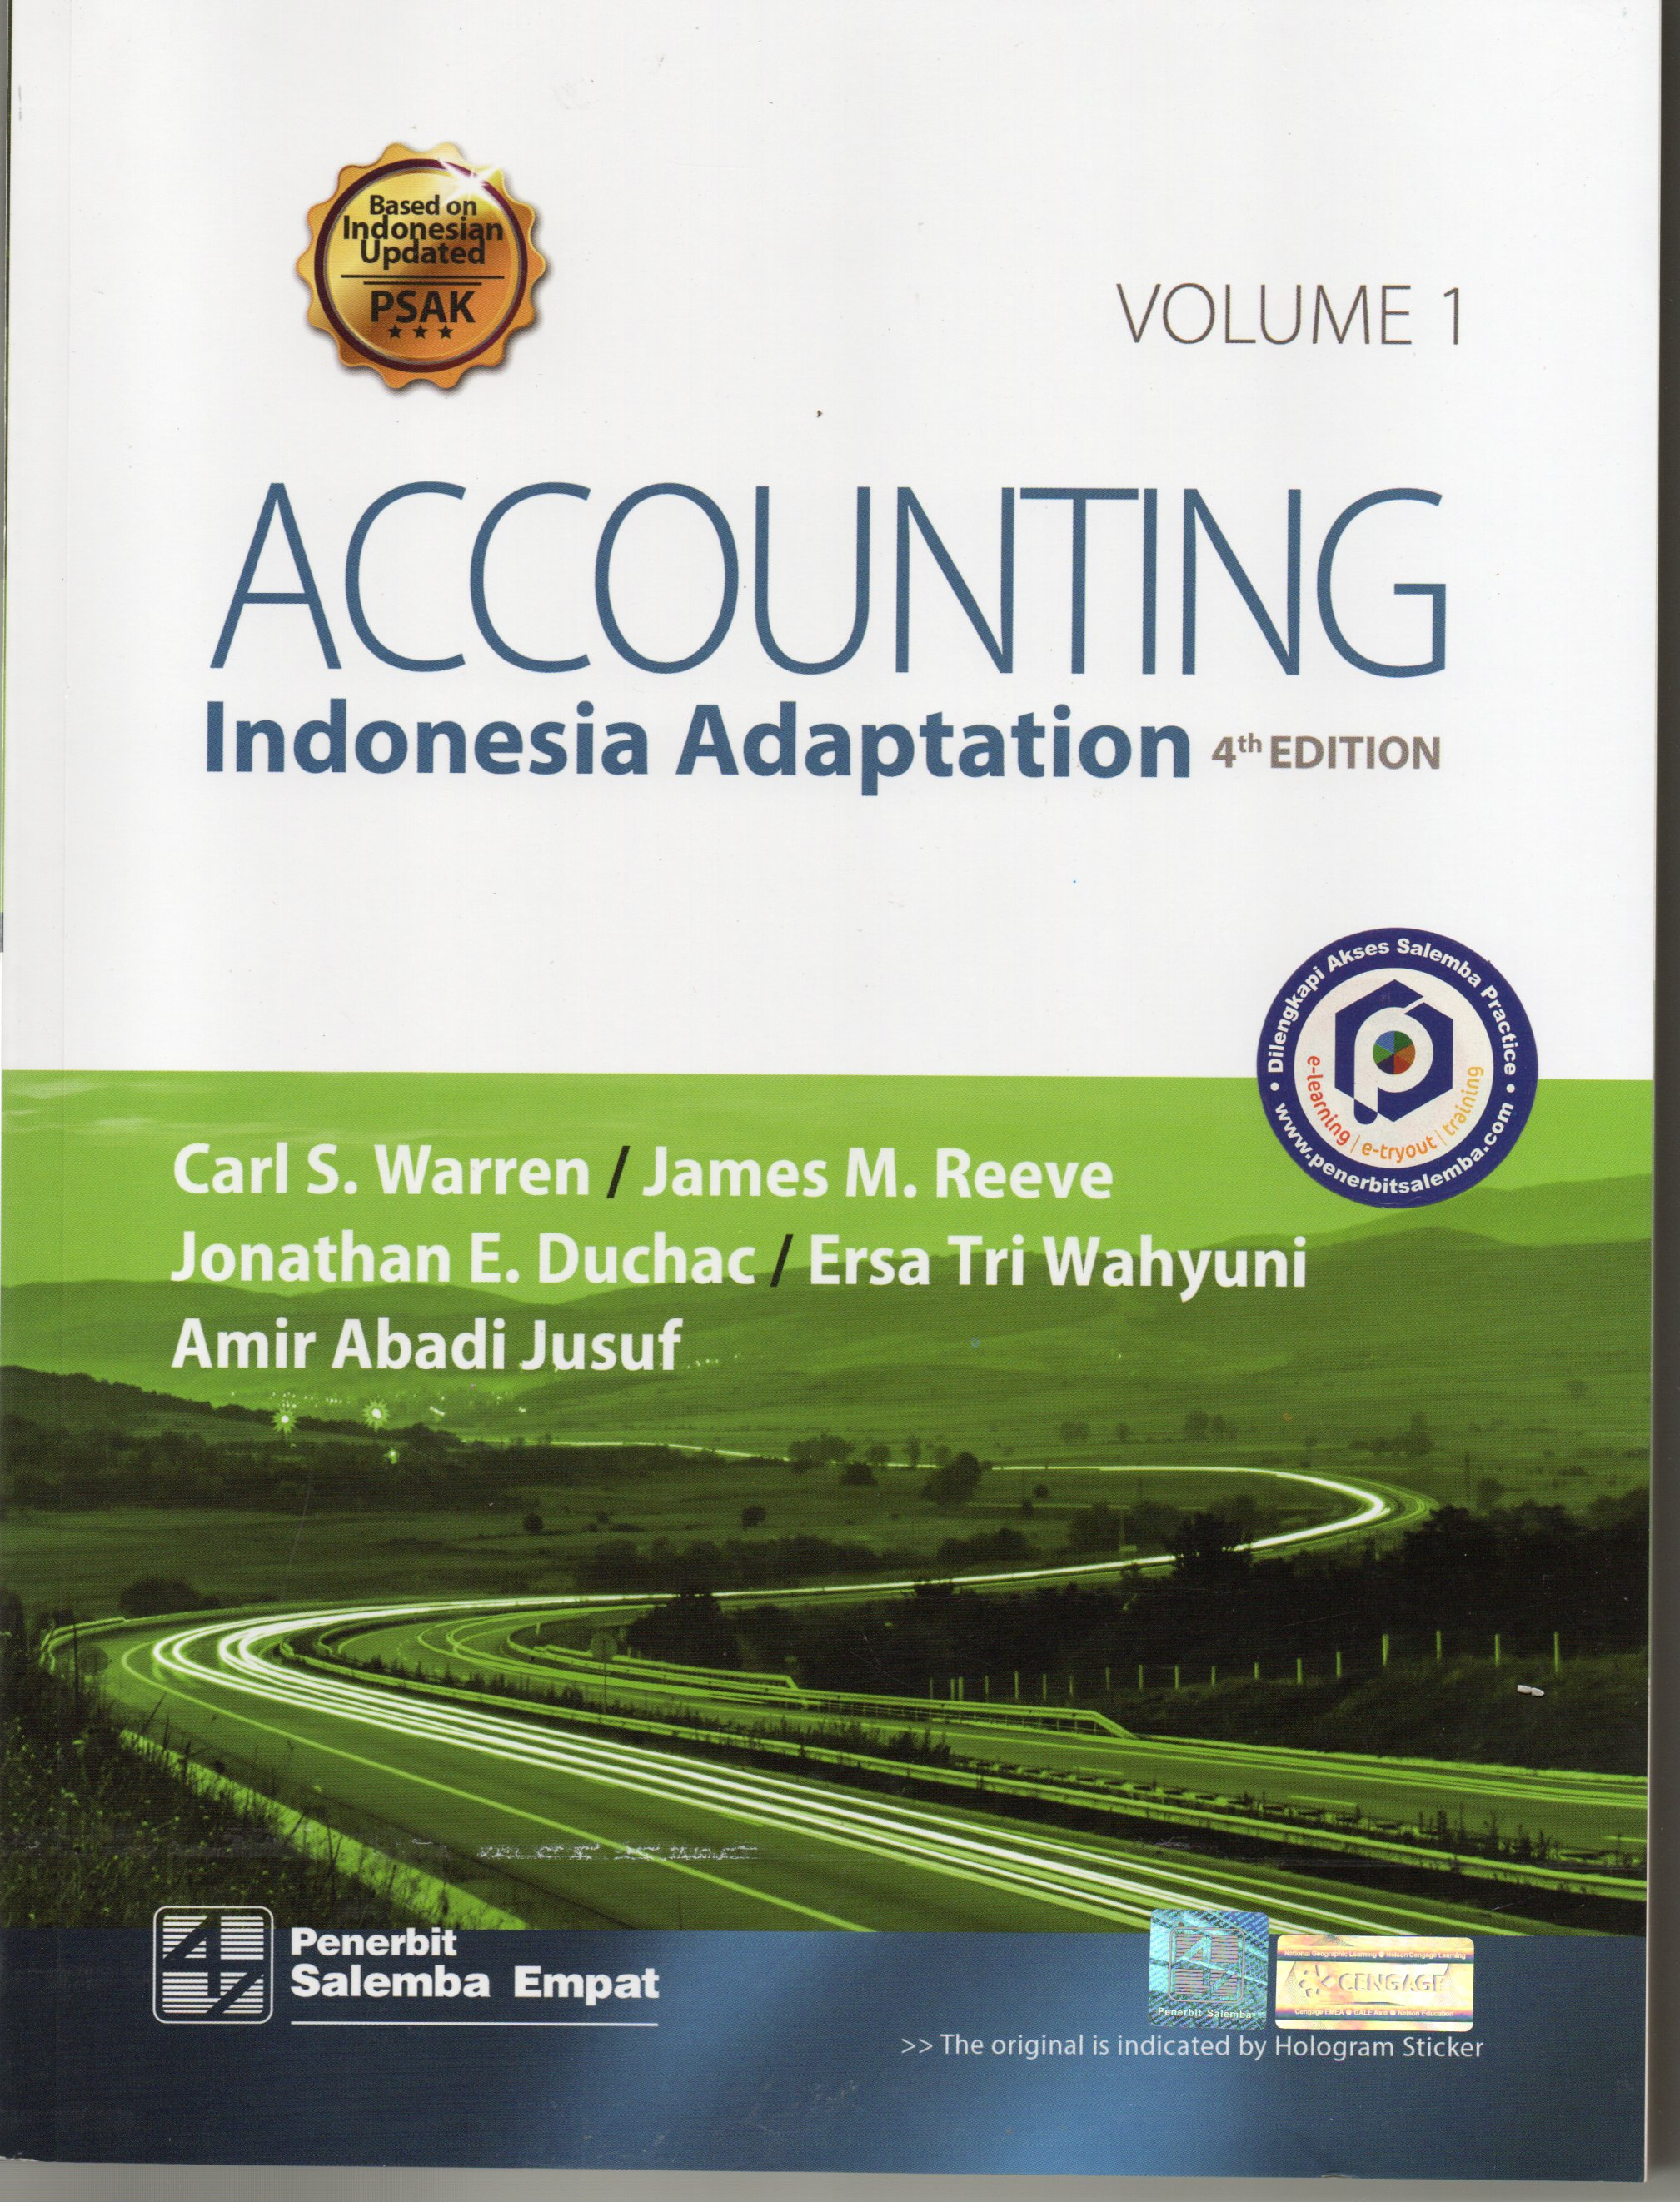 Accounting Indonesia adaption 4th ed / Carl S. Warren Vol 1